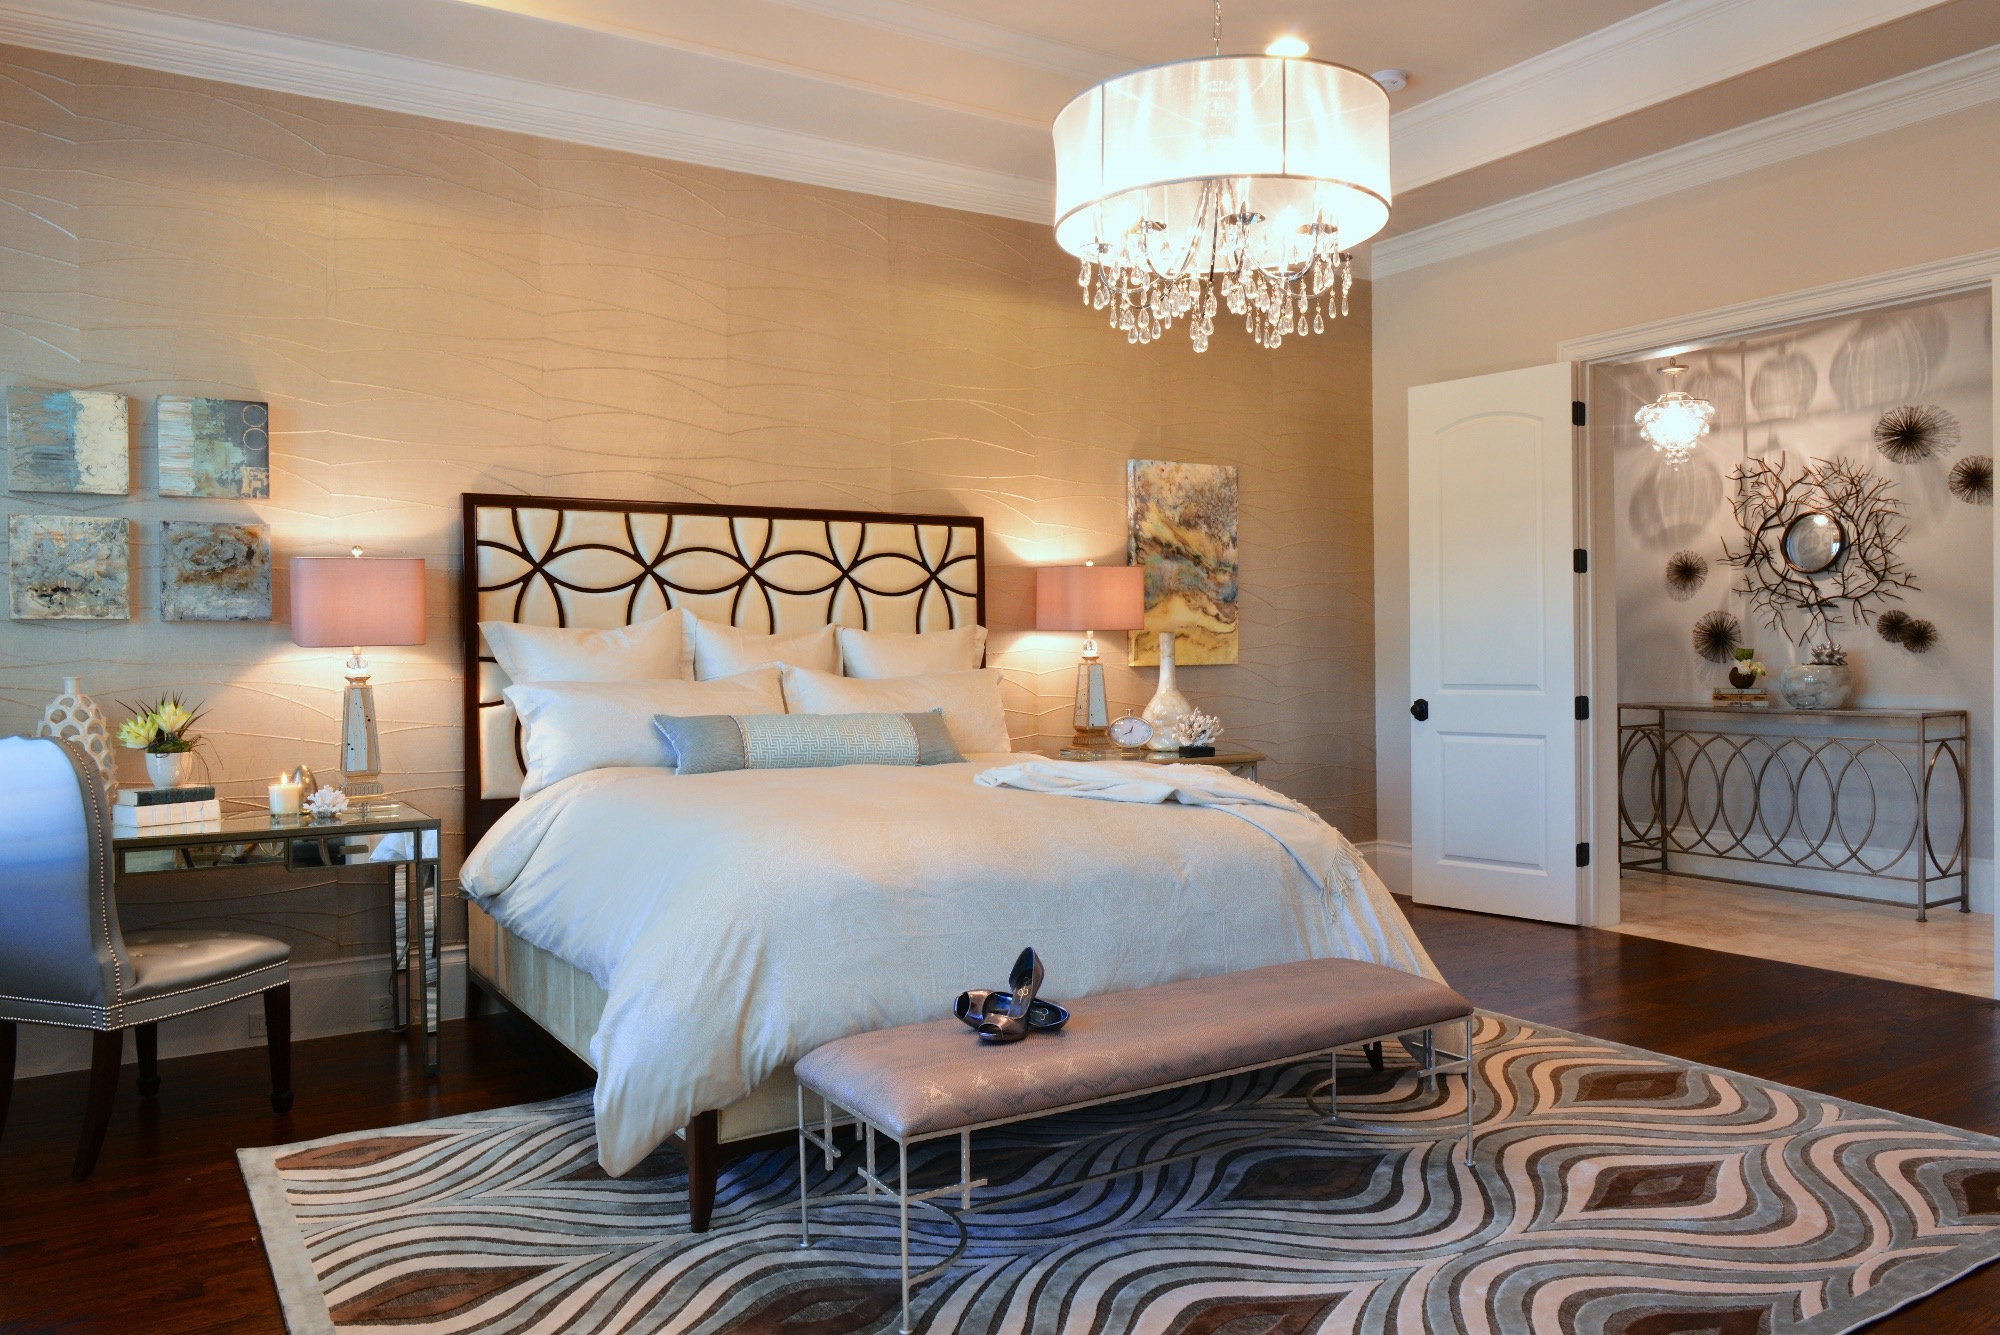 Deluxe Master Bedroom With Metallic Accents For Luxurious Nuance (Image 8 of 16)